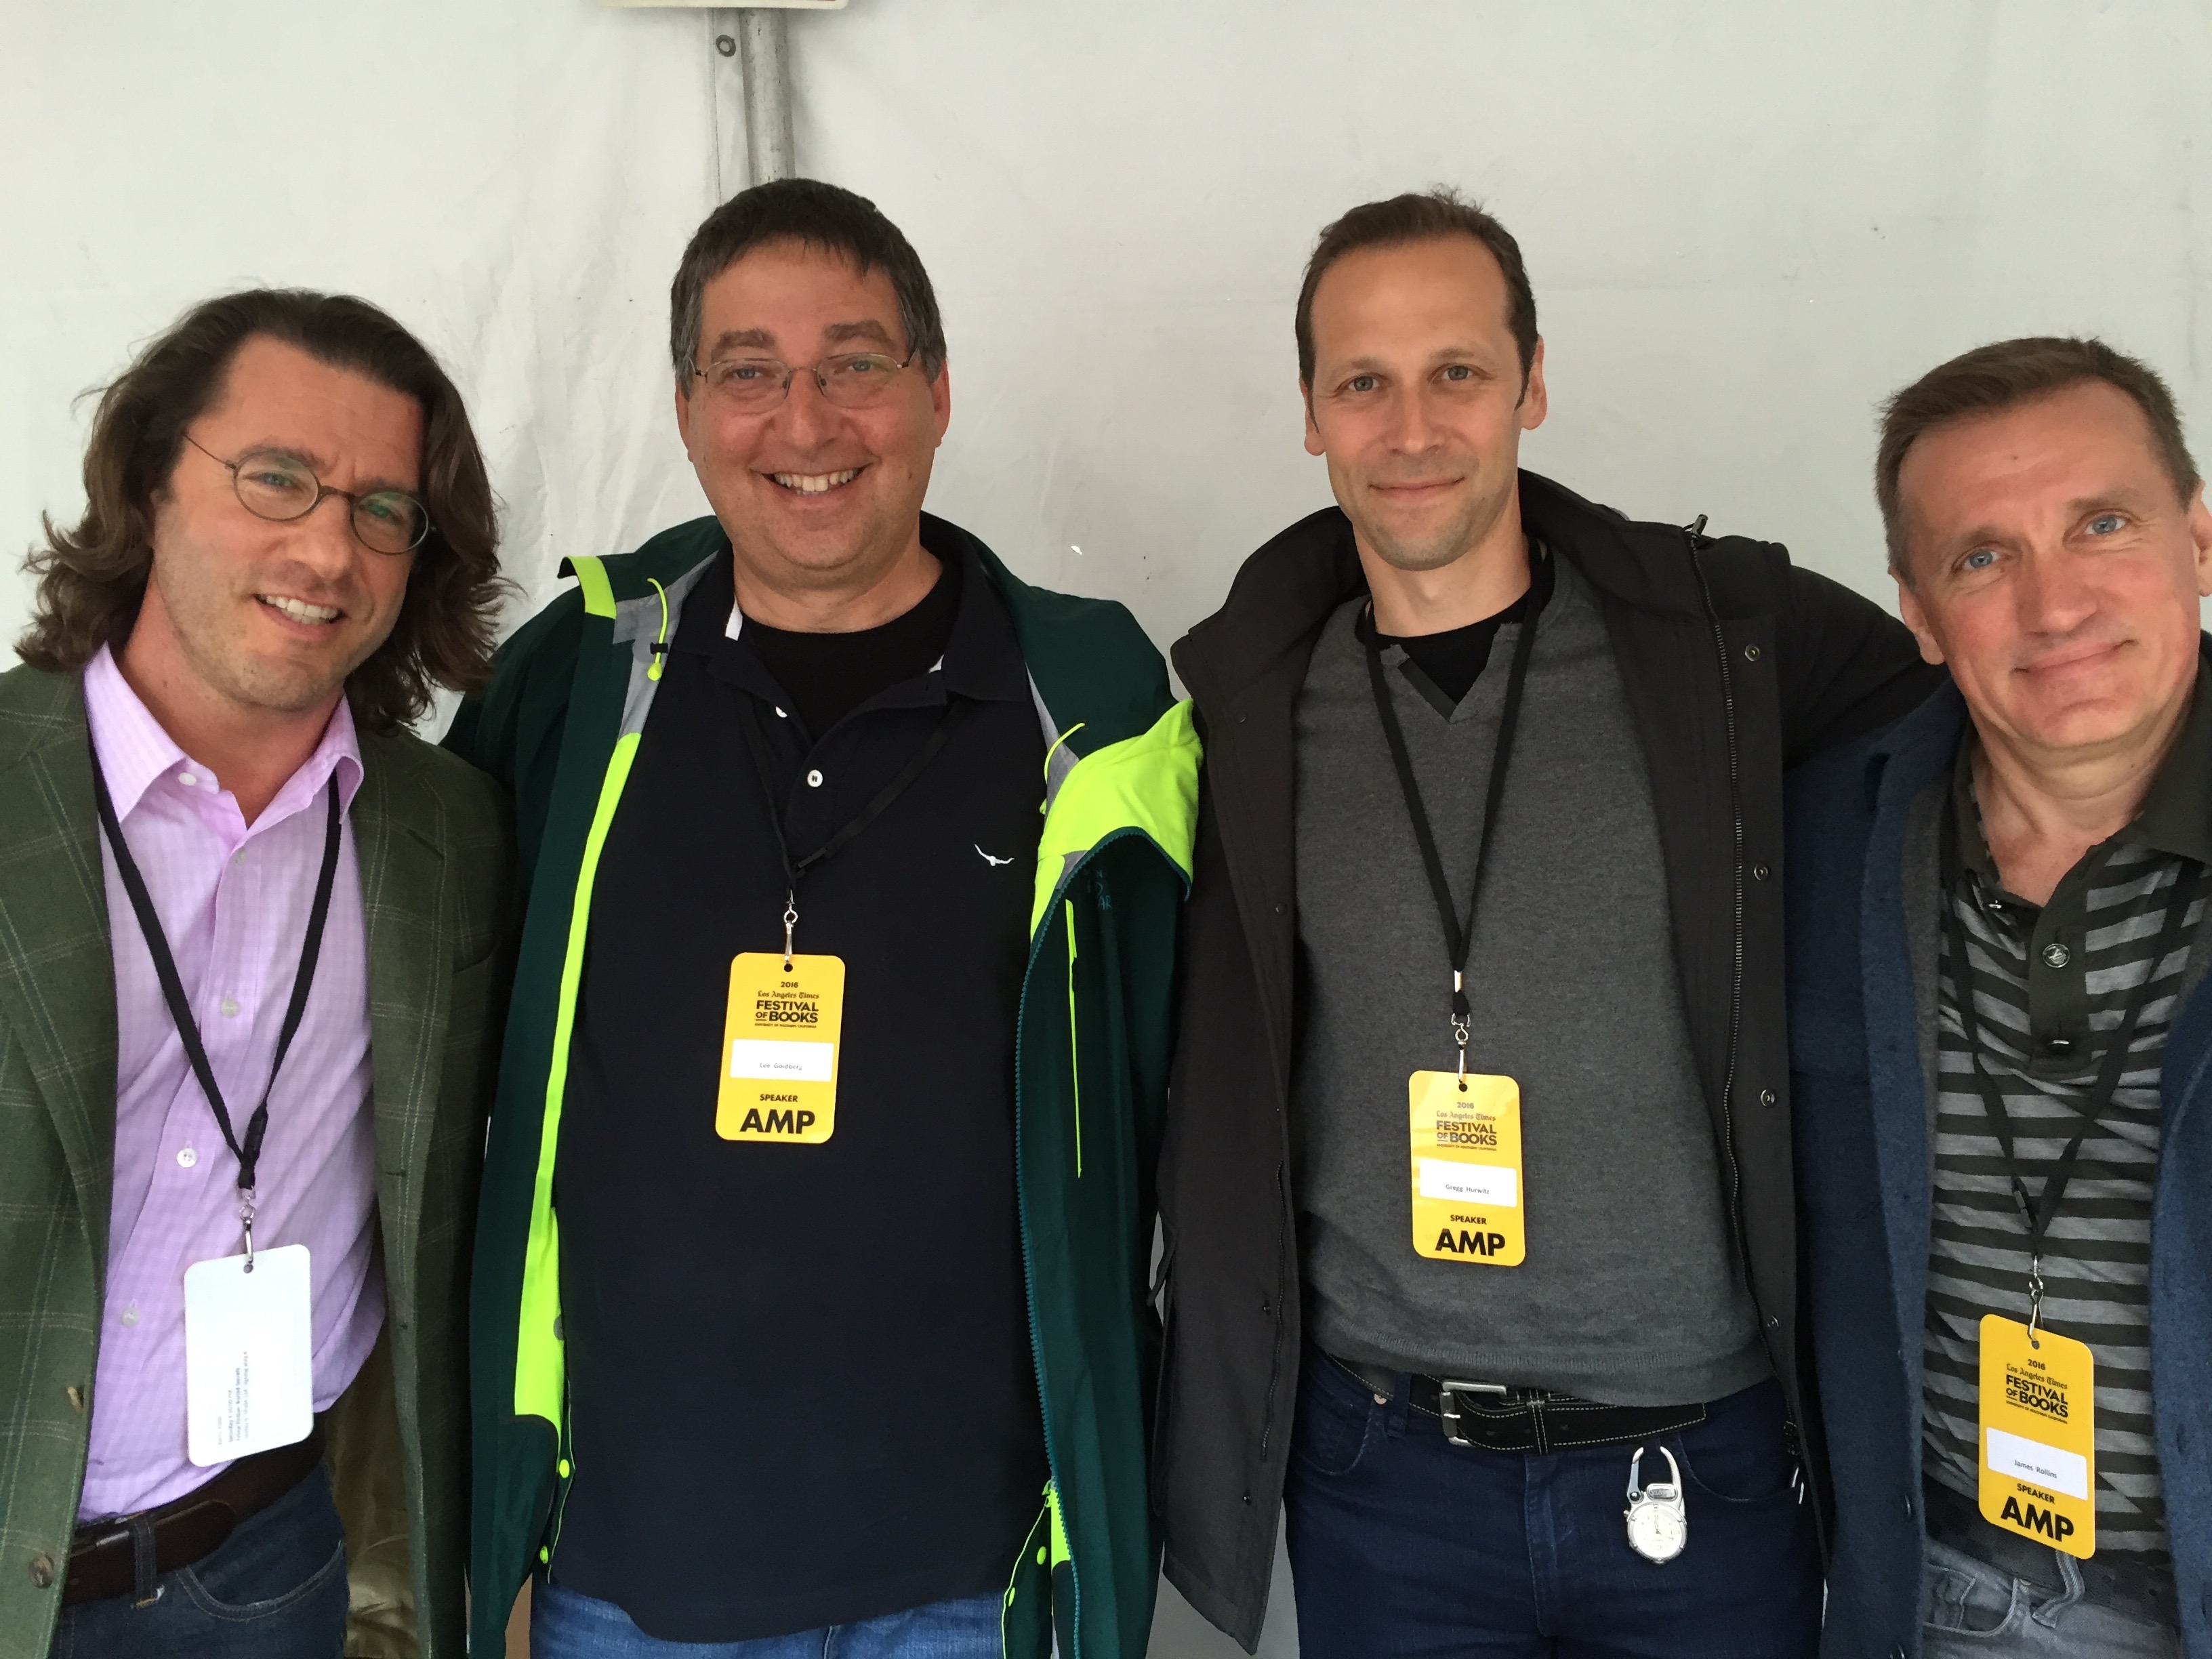 Barry Eisler, Lee Goldberg, Gregg Hurwitz and James Rollins at the Los Angeles Times Festival of Books 2016